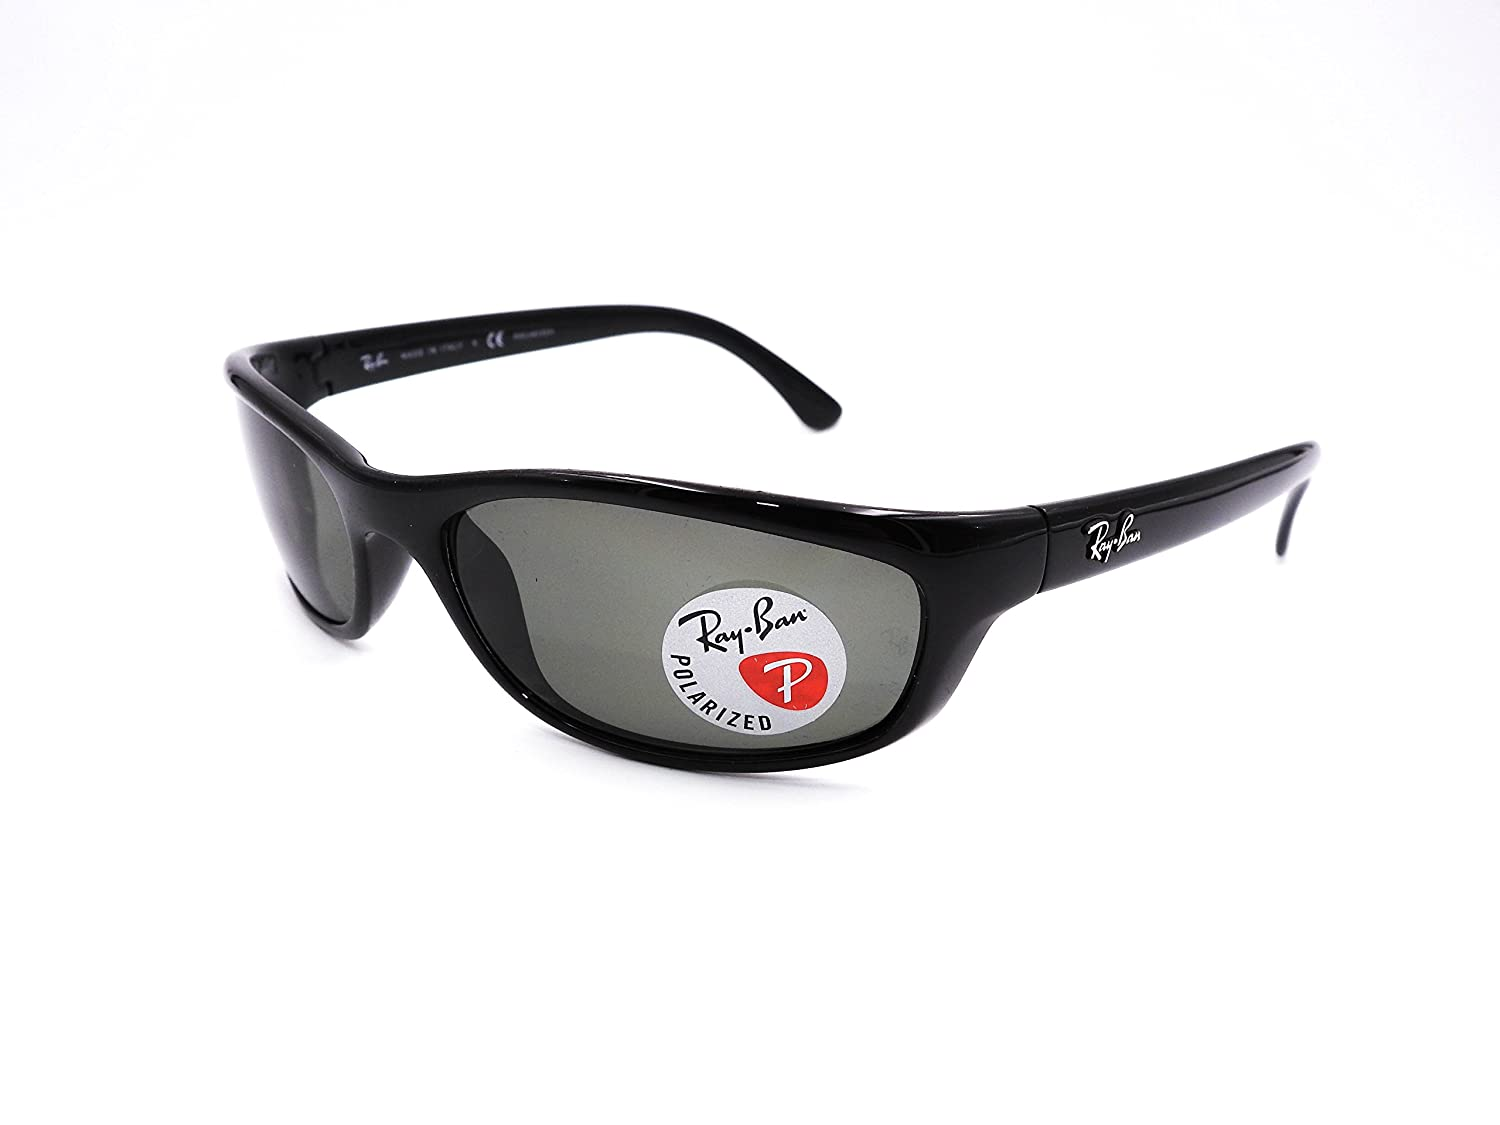 d1f259177c Amazon.com  Ray-Ban RB4115 - 601 9A Sunglasses Black w  Polarized  Grey-Green Lens 57mm  Clothing